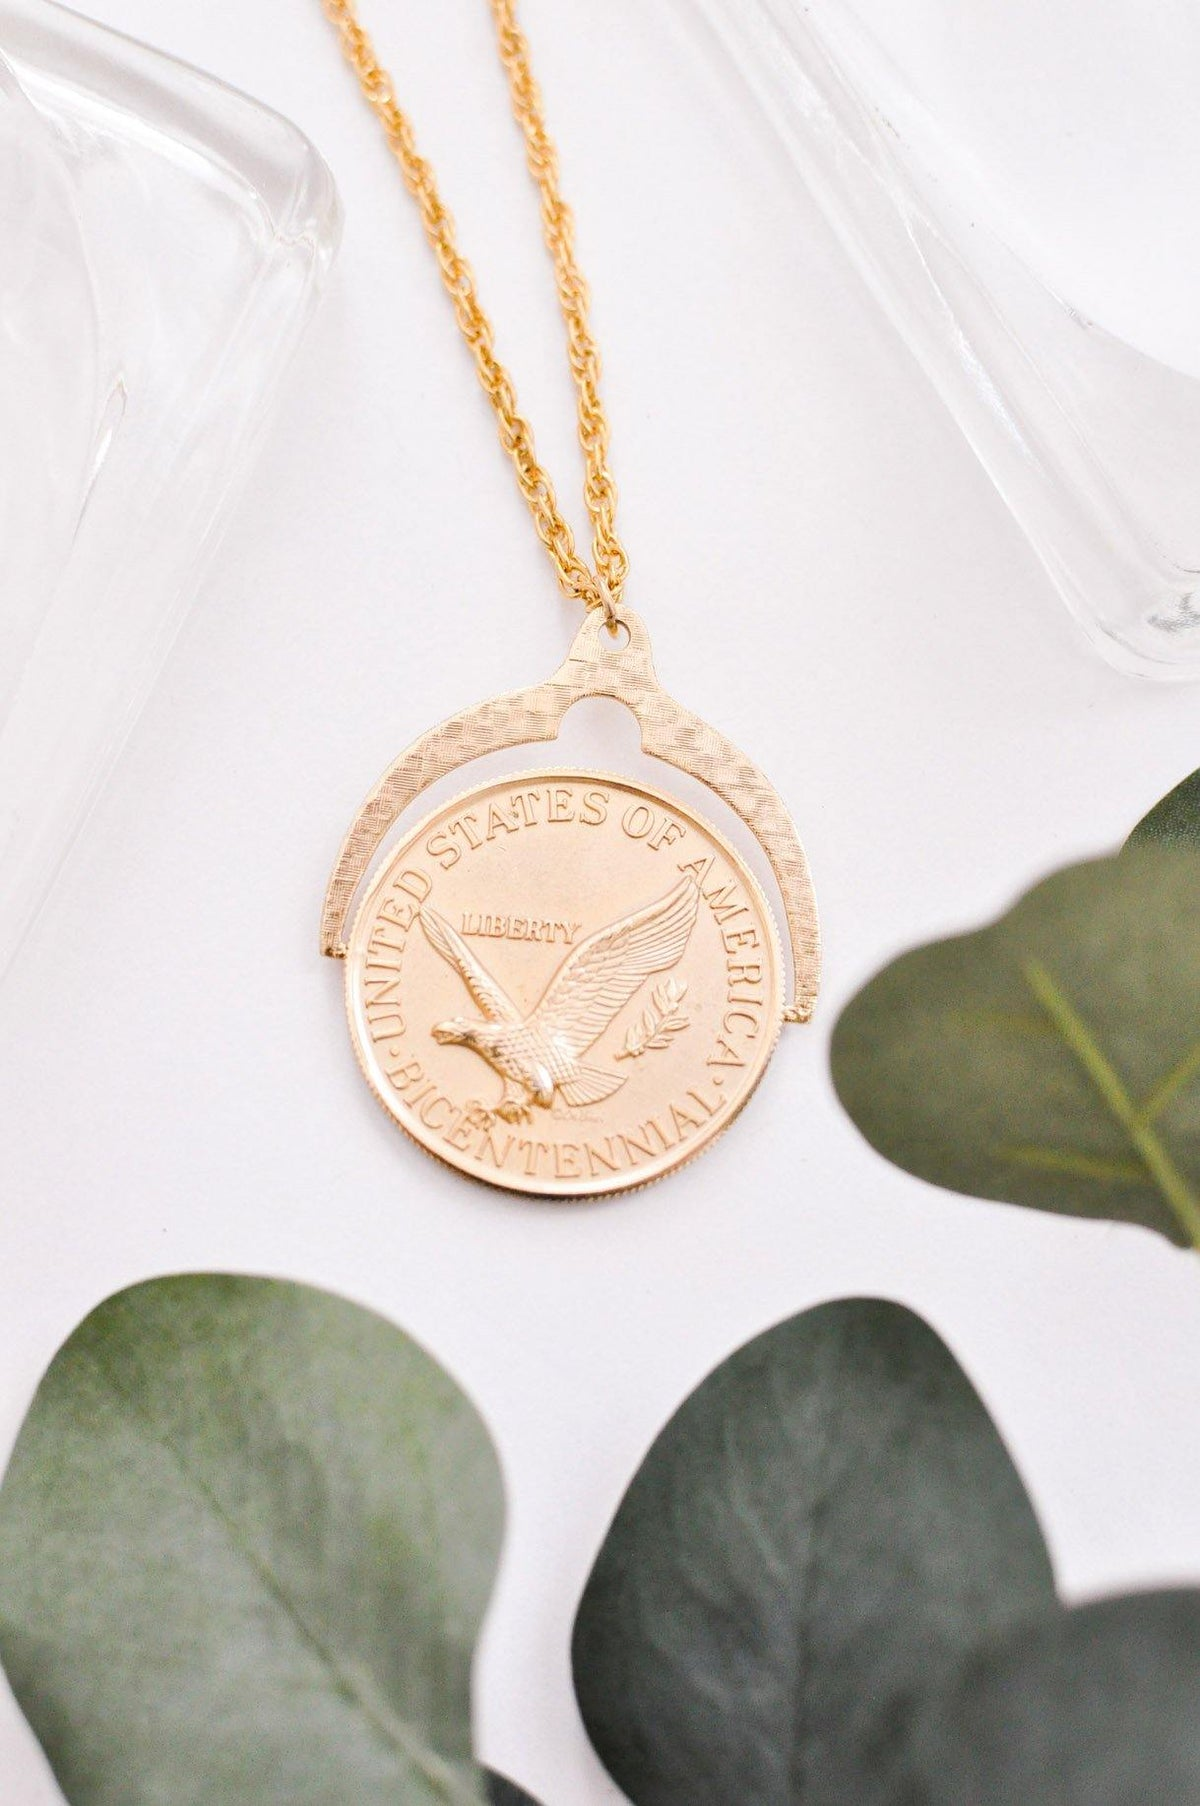 Vintage United States Coin Necklace from Sweet and Spark.